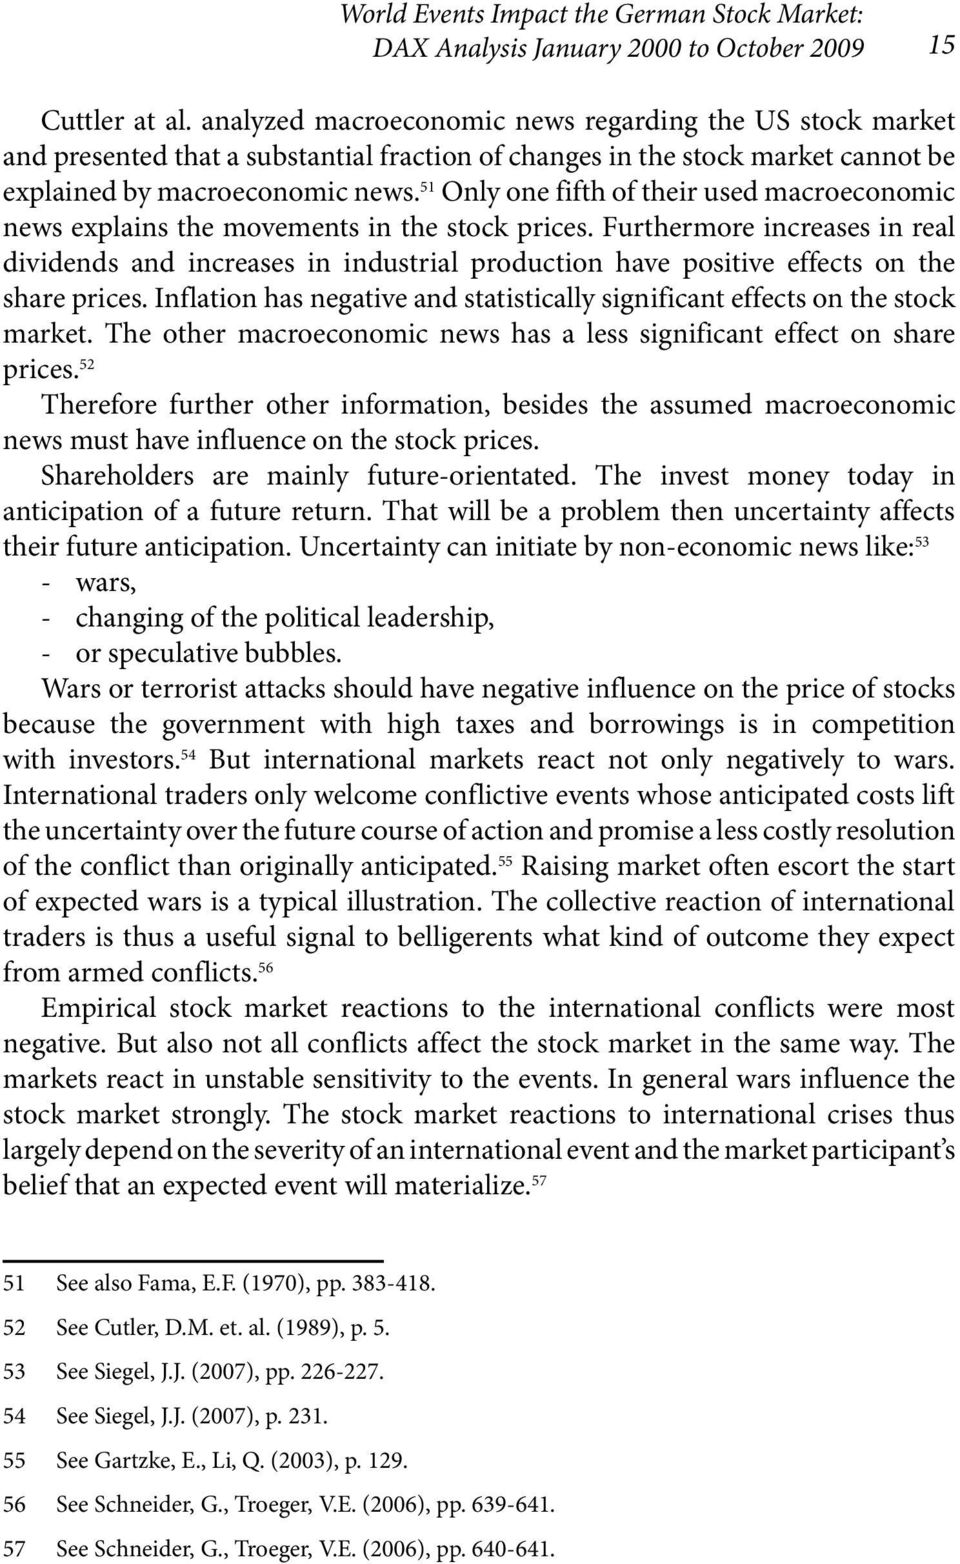 51 Only one fifth of their used macroeconomic news explains the movements in the stock prices.